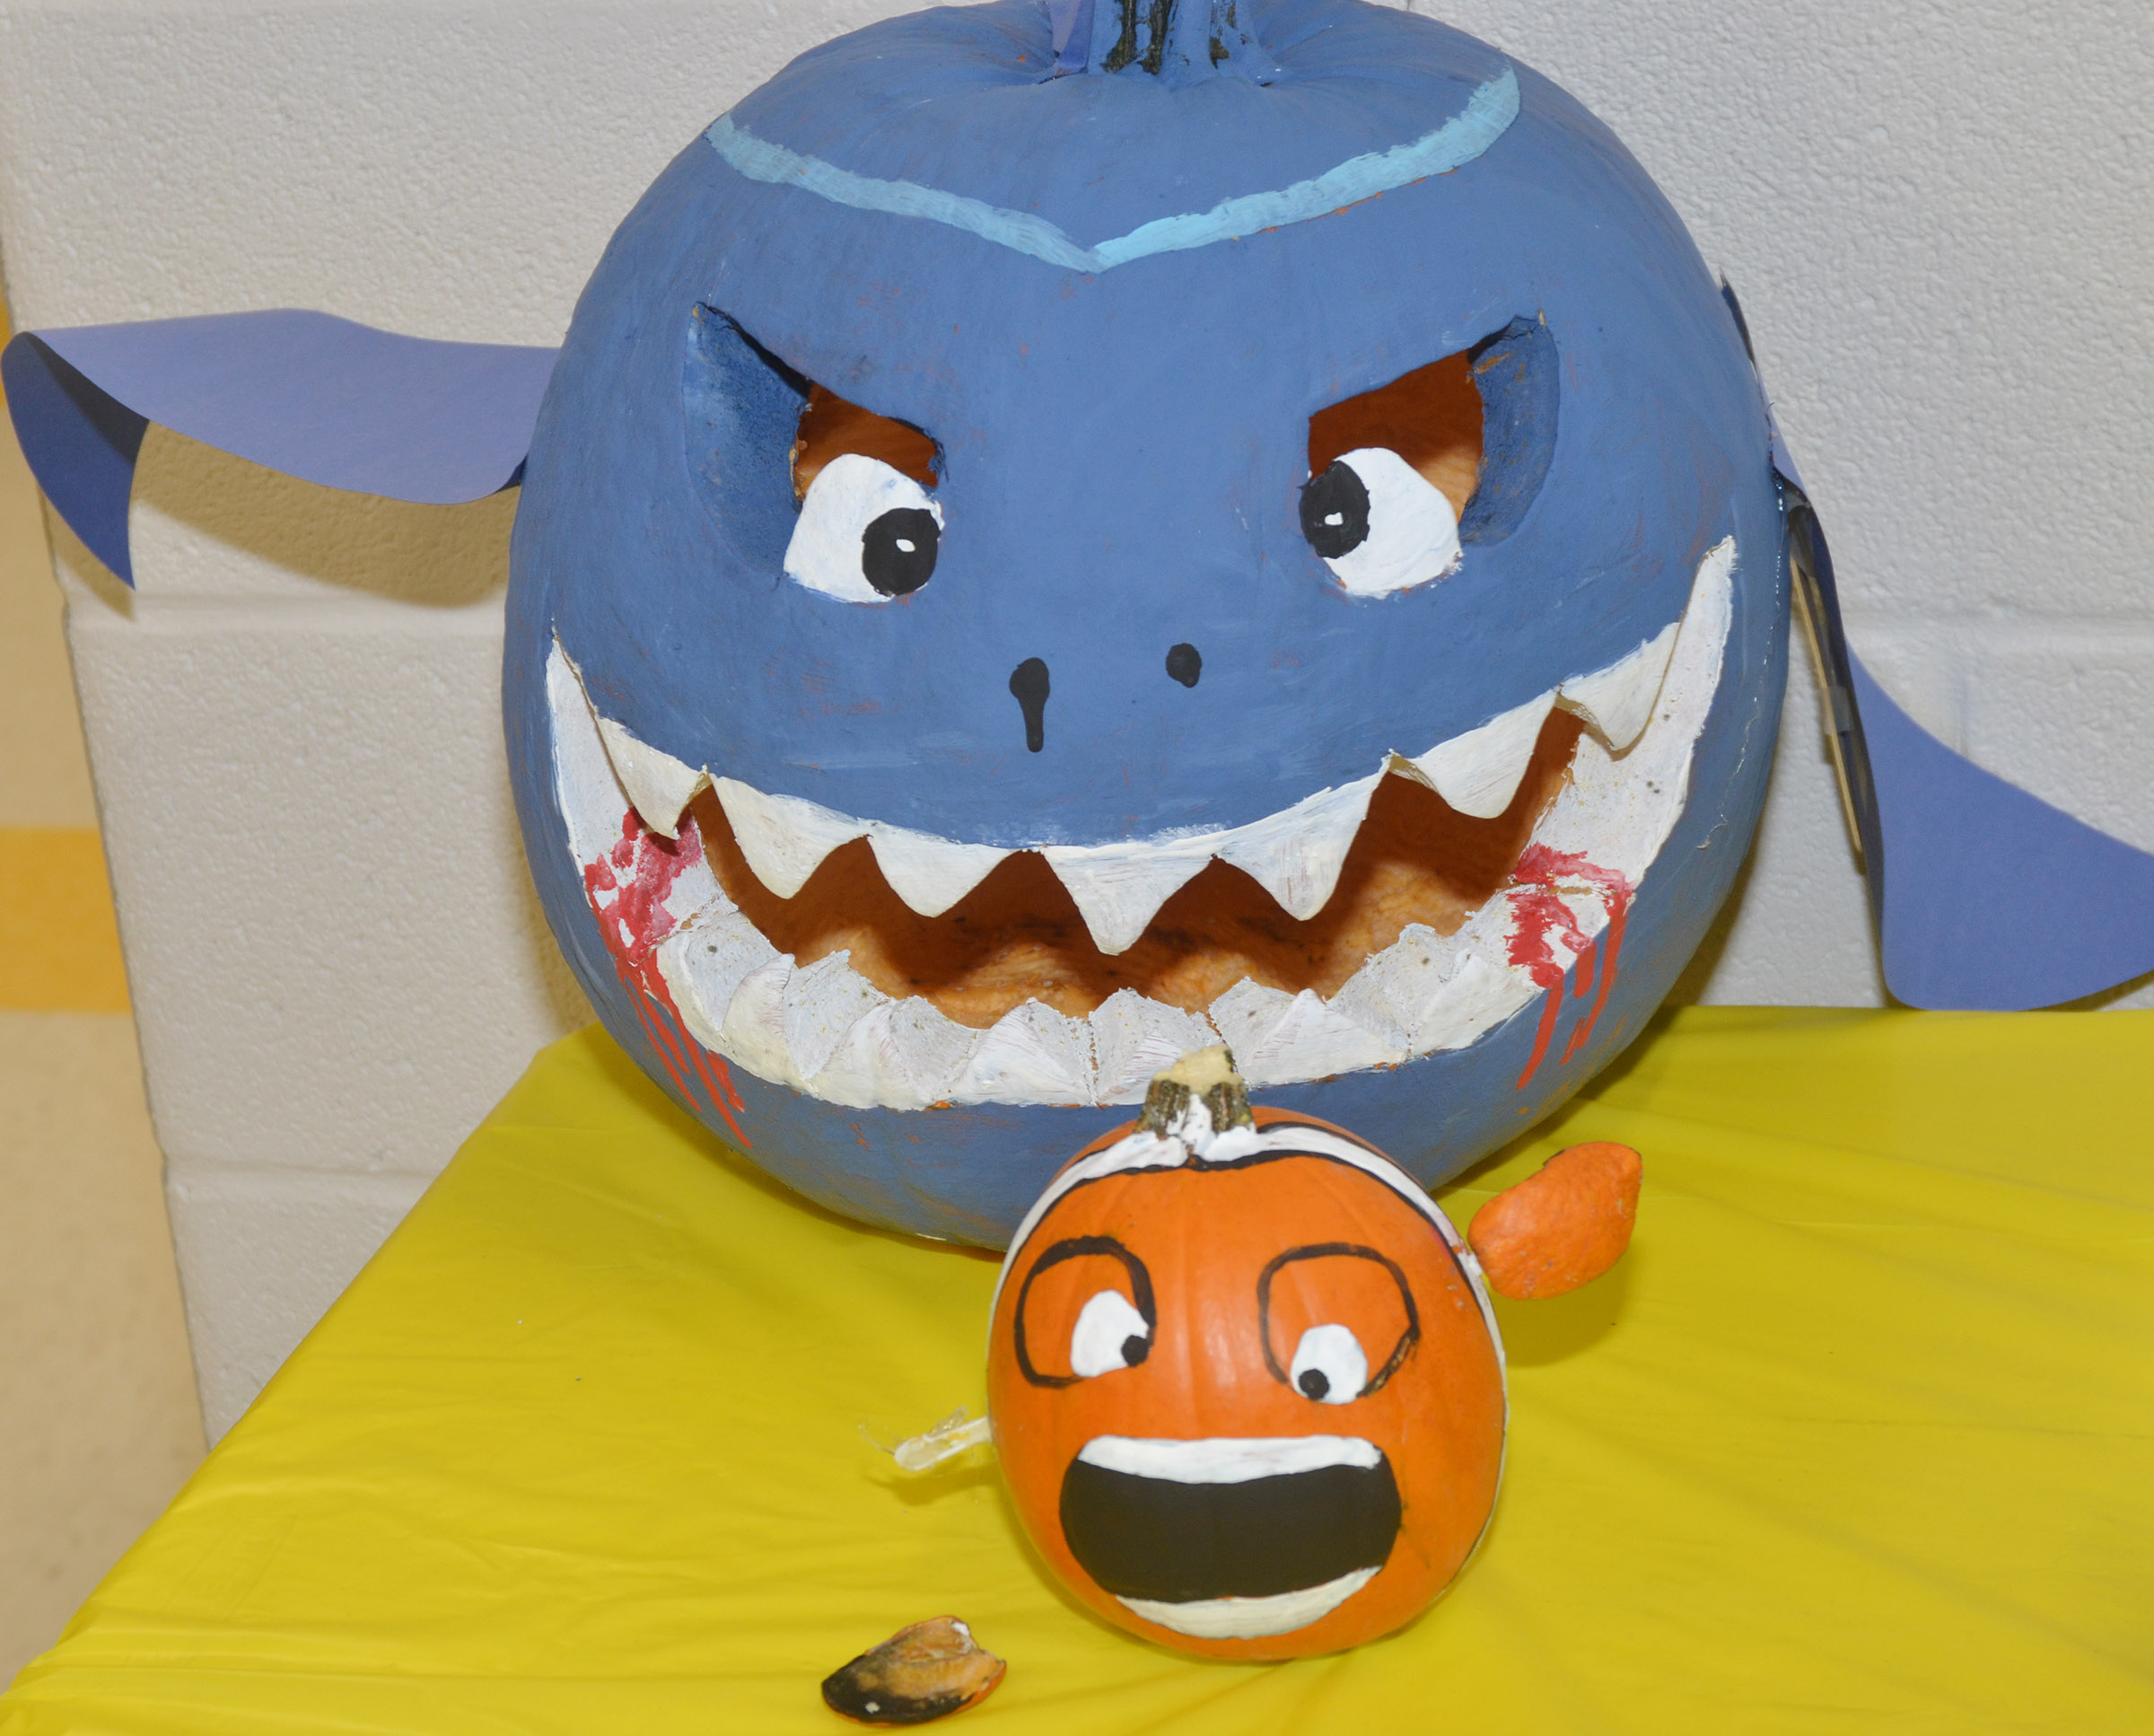 CES teachers are competing in a pumpkin decorating contest to raise money for cystic fibrosis research. The entries, above, are featured in the CES lobby. Votes cost a penny each and money can be submitted to the CES office.